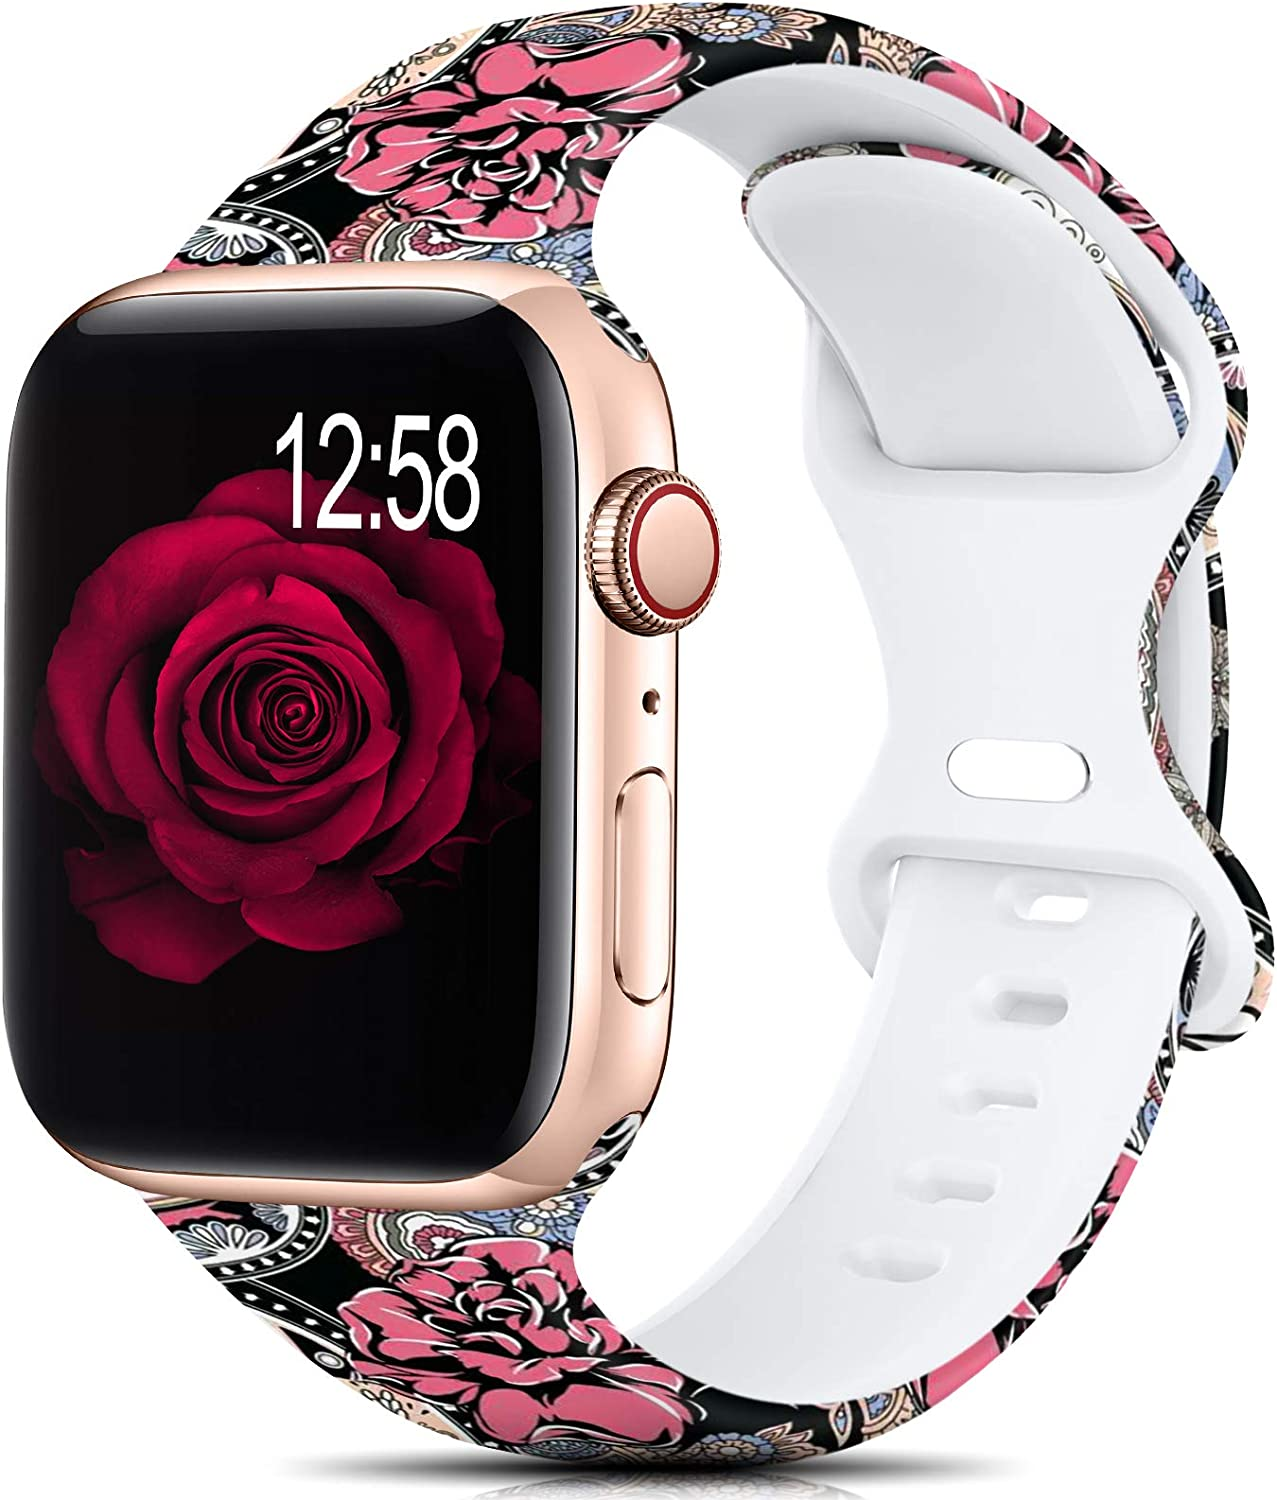 Sport Band Compatible with Apple Watch Bands 38mm 40mm 42mm 44mm Size for Women Men Girls,Floral Silicone Printed Fadeless Pattern Band for iWatch series 6 5 4 3 2 SE